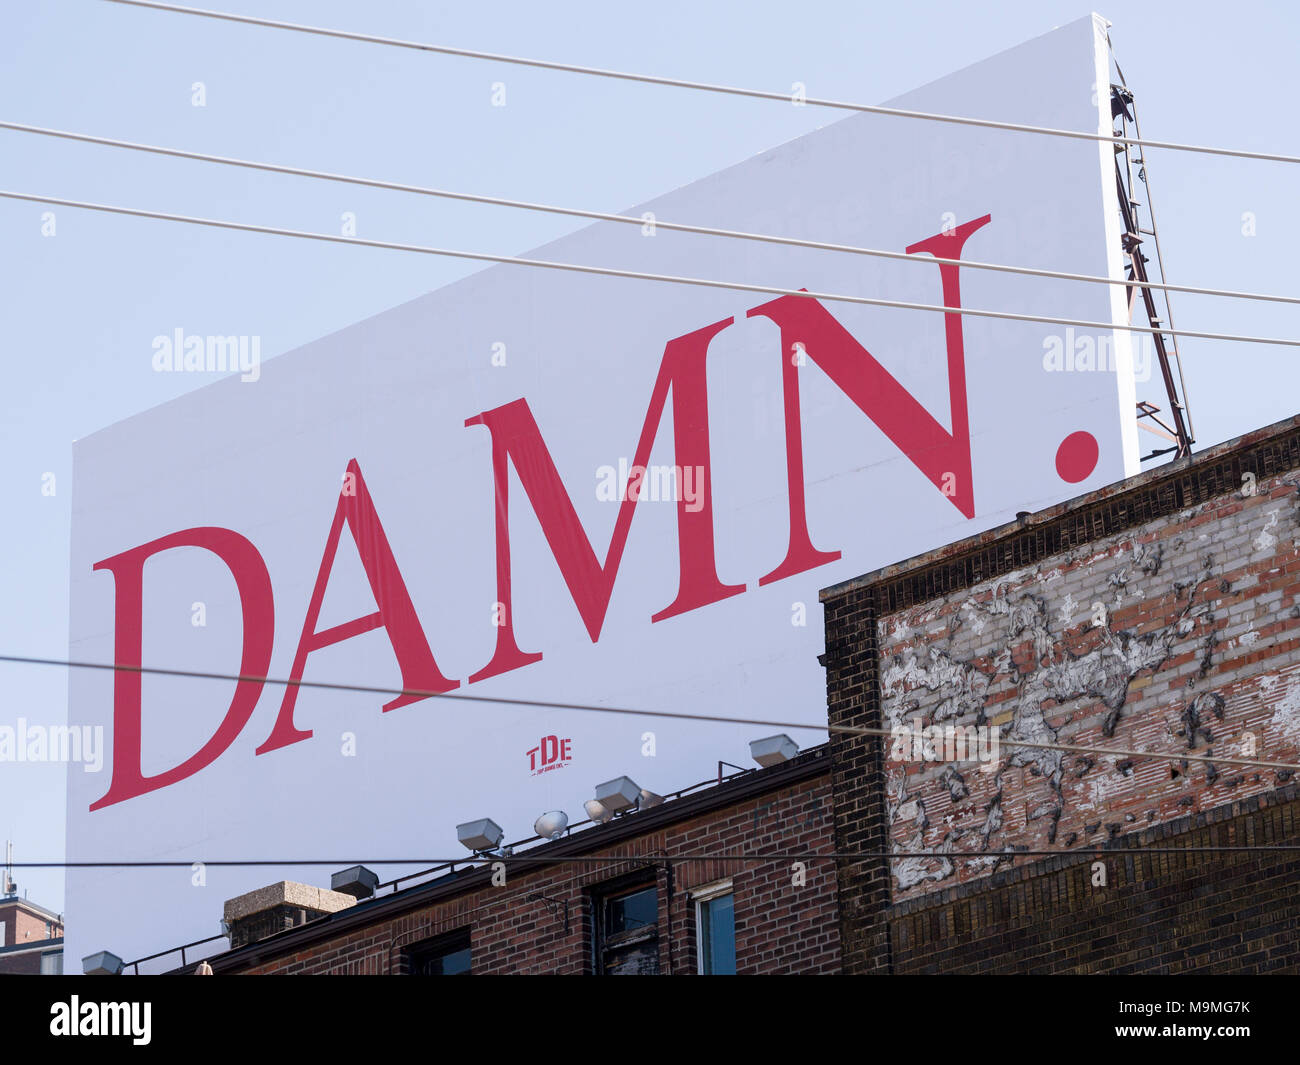 DAMN. Gardner Expressway visible billboard: A large billboard with the single word damn in large red letters graces an old building in Old Toronto. It is an ad for a new Kendrick Lamar album. - Stock Image